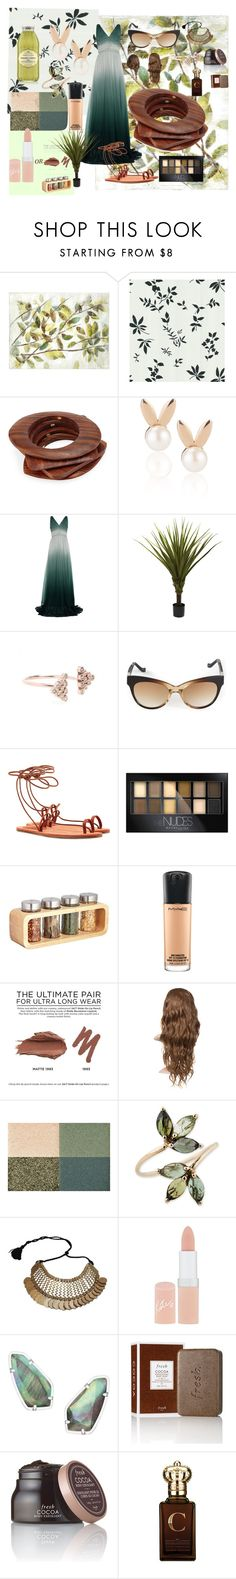 """""""earth tones"""" by jazzktiwana ❤ liked on Polyvore featuring Pier 1 Imports, Brewster Home Fashions, Kenneth Jay Lane, Aamaya by priyanka, Burberry, Nearly Natural, Jacquie Aiche, The Row, Chloé and Maybelline"""